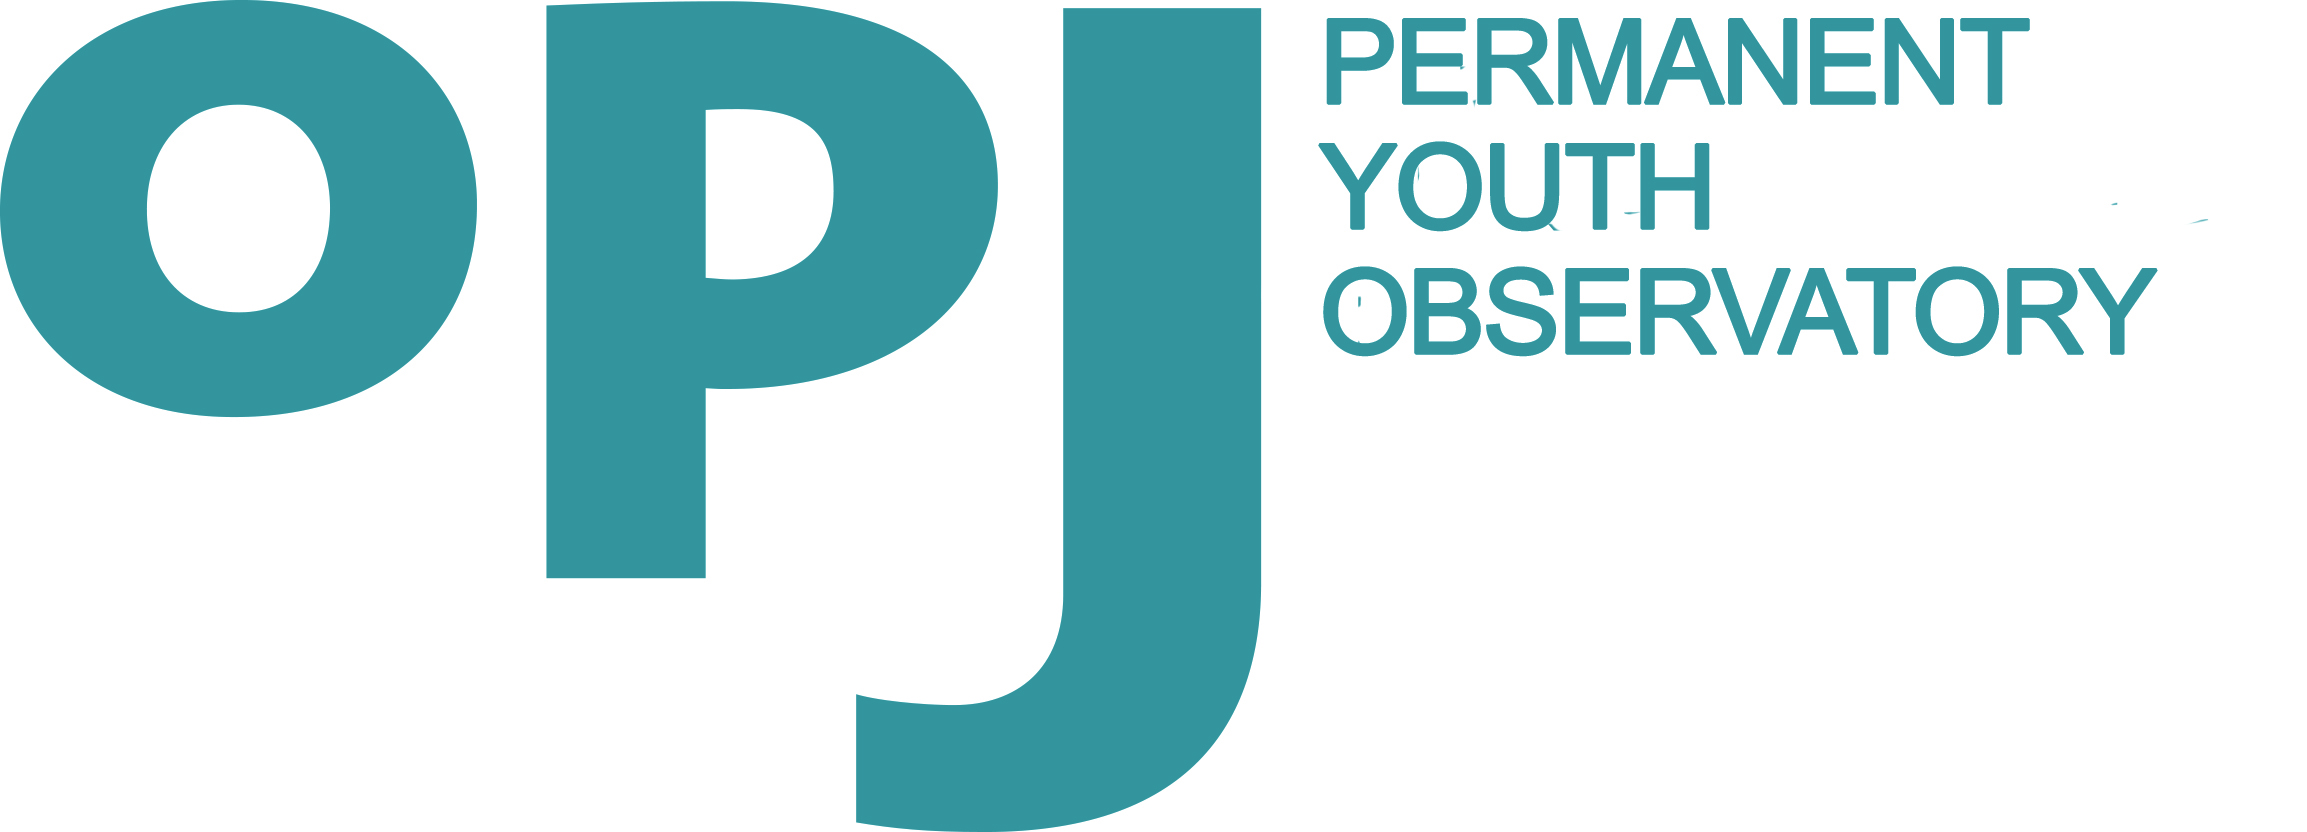 OPJ-Permanent Observatory of Youth